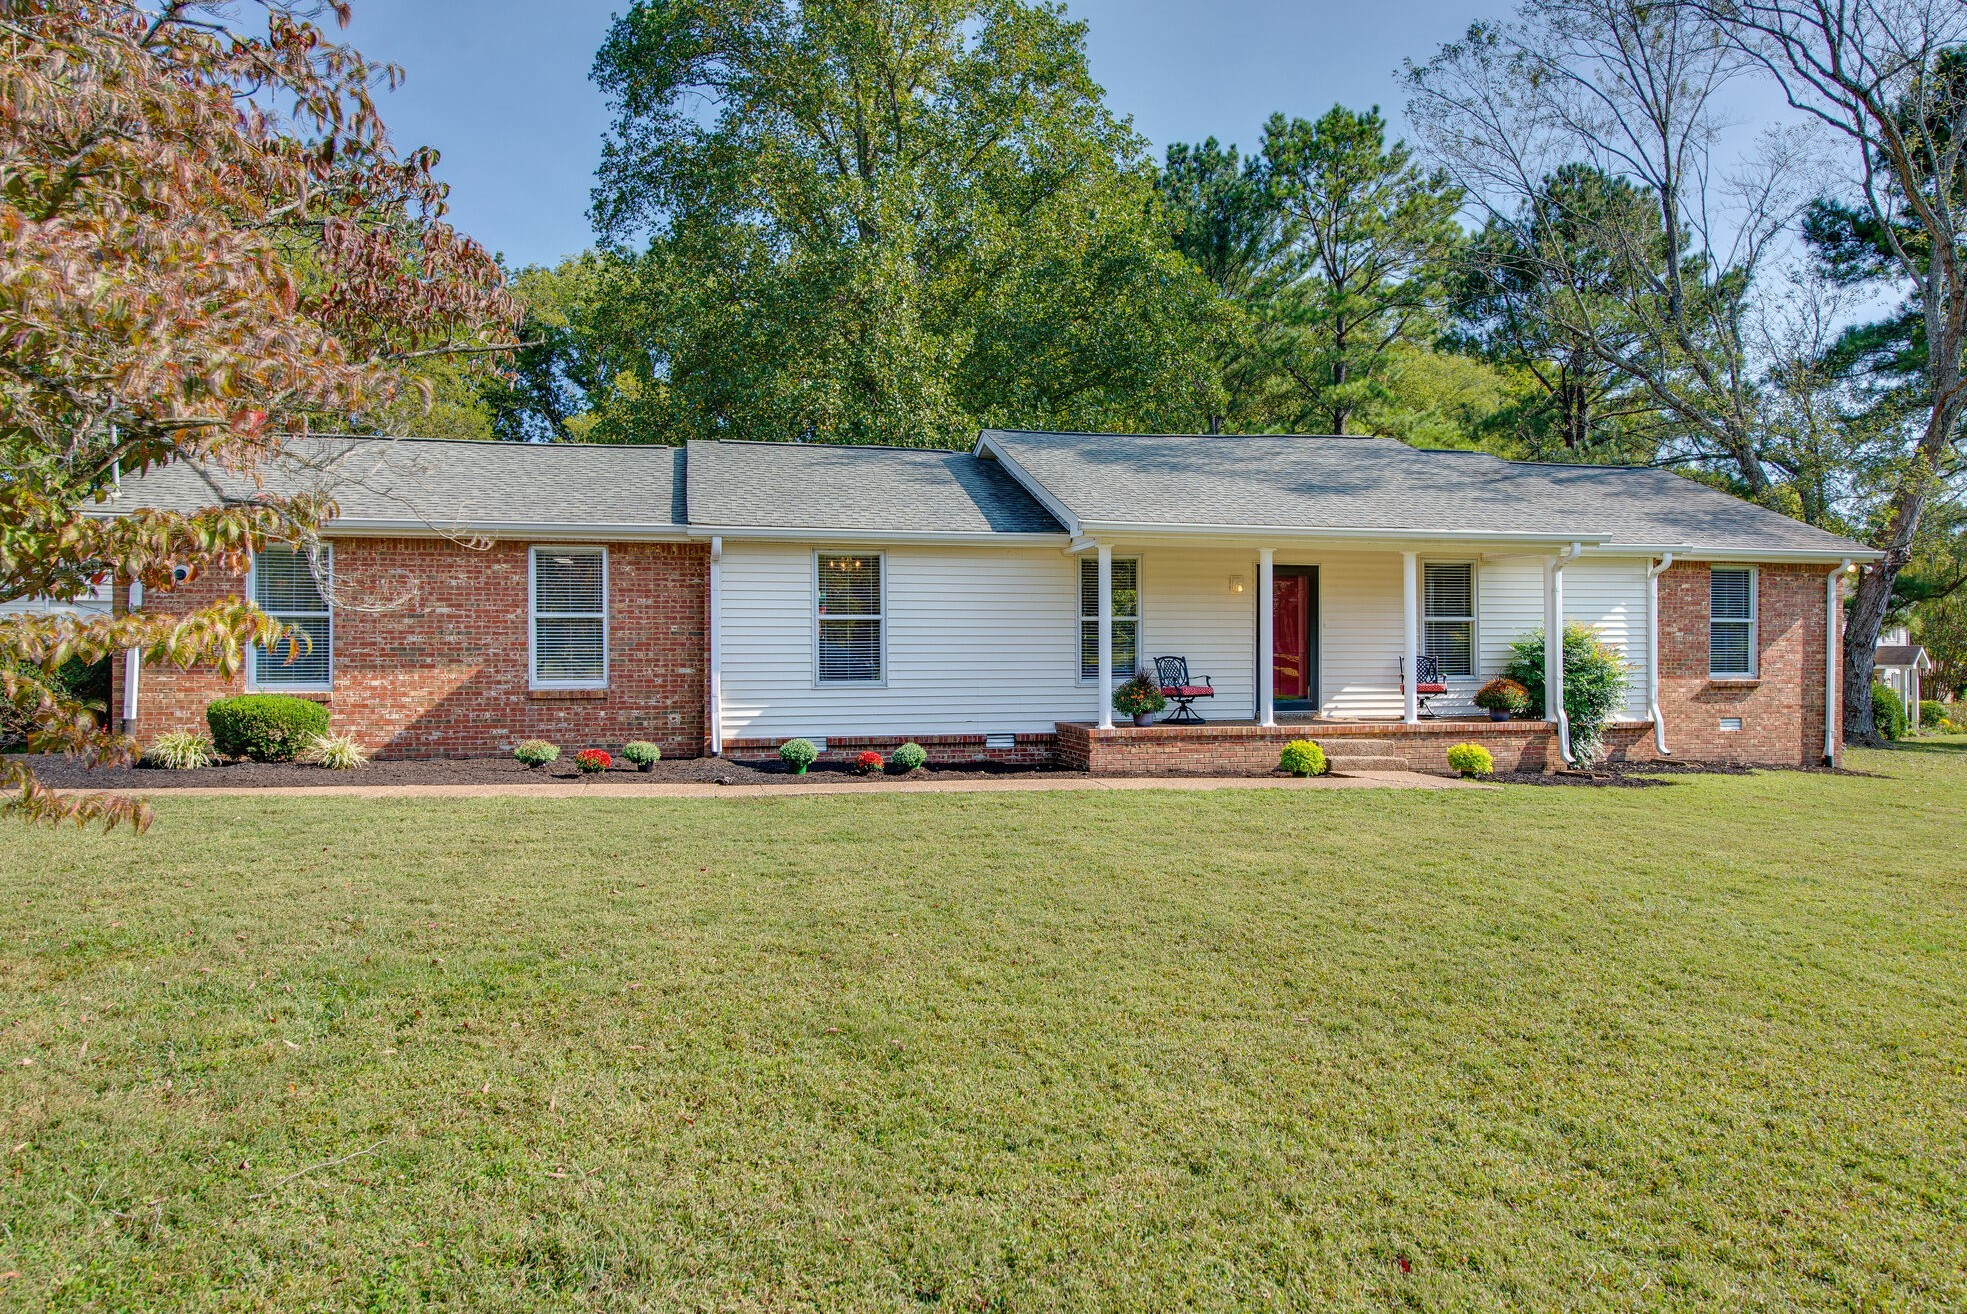 7516 Patomic Dr Property Photo - Nashville, TN real estate listing